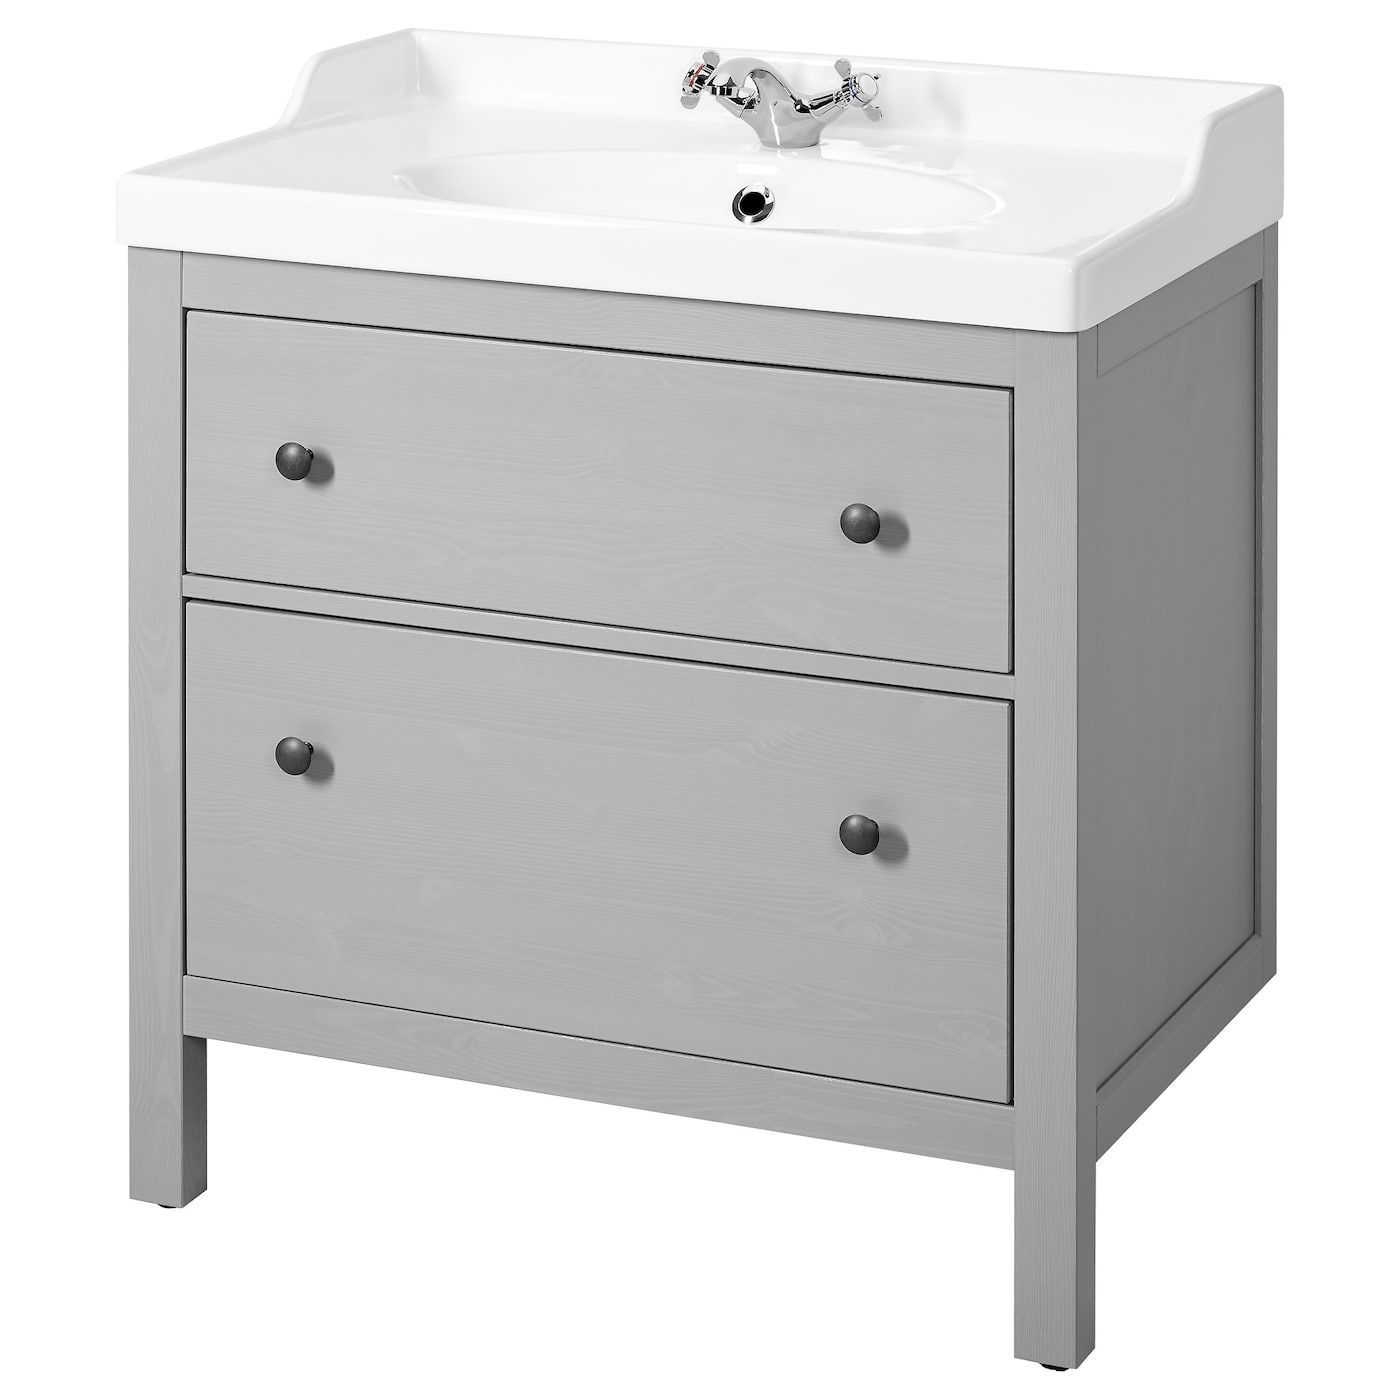 Sink Cabinet With 2 Drawers